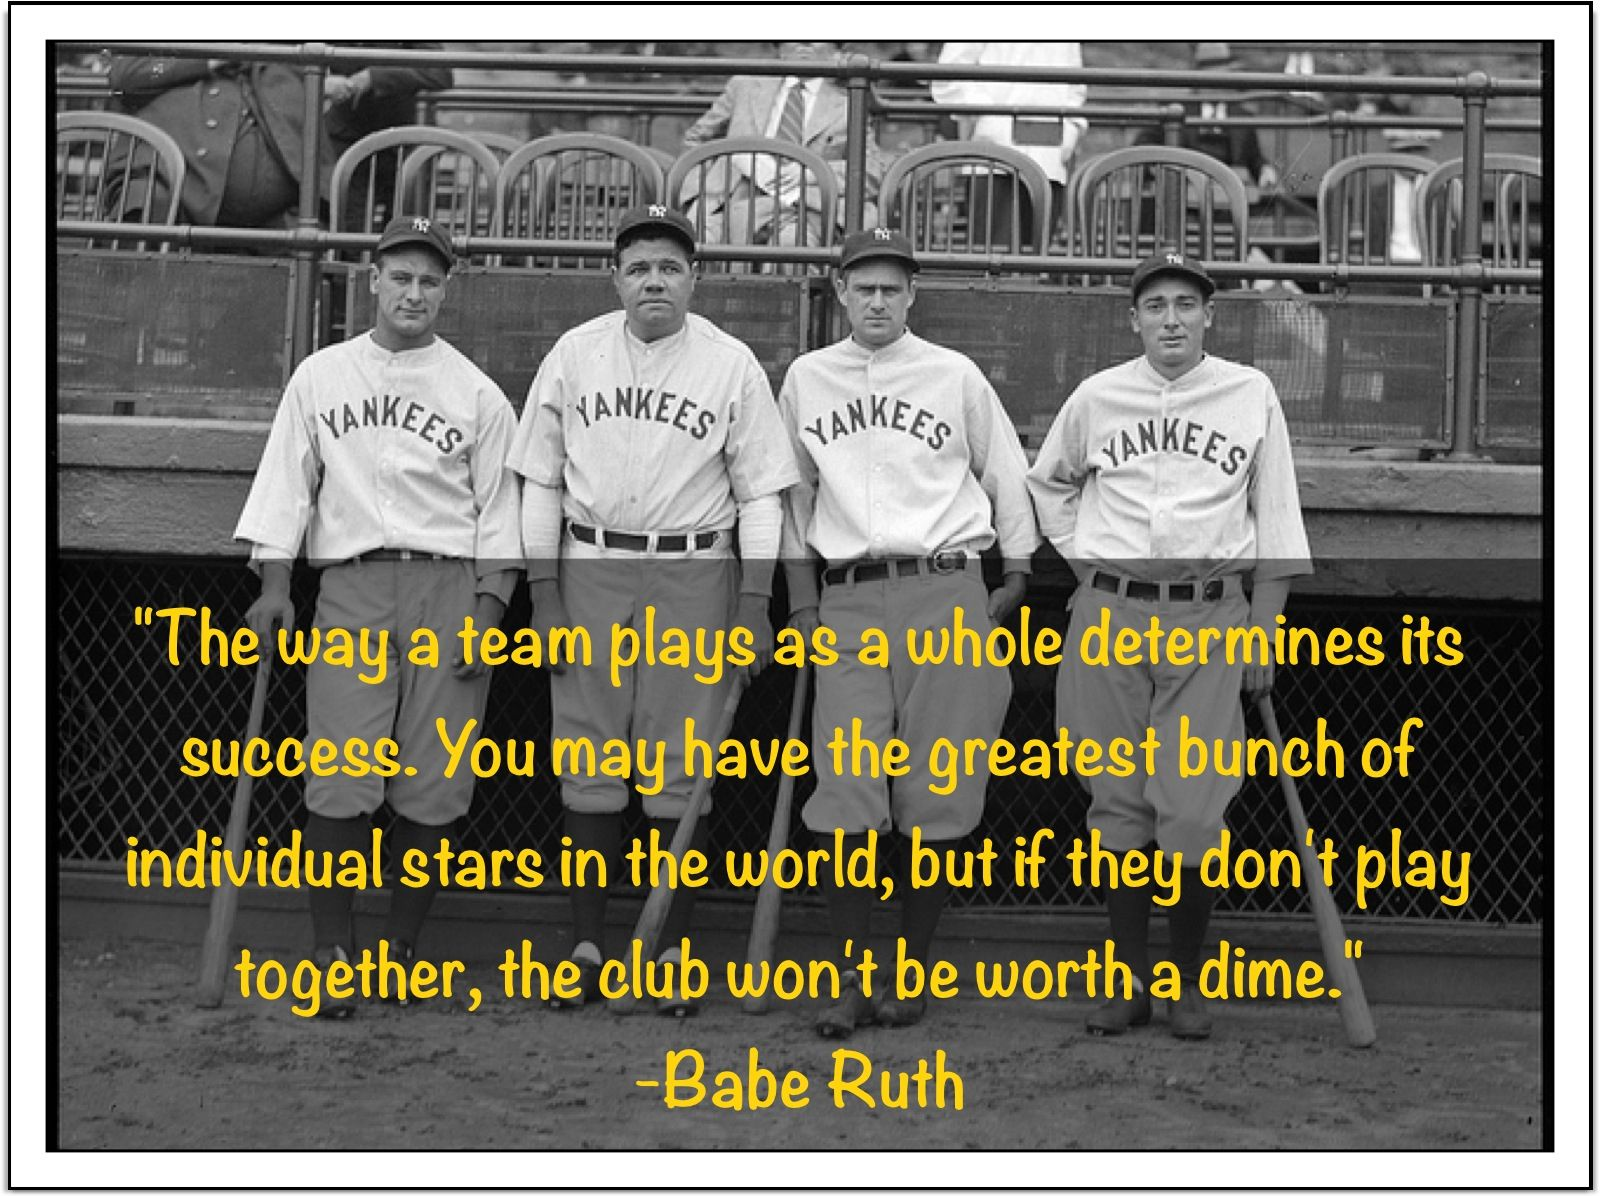 Babe Ruth On Teamwork Famous Baseball Quotes Teamwork Quotes Work Motivational Quotes